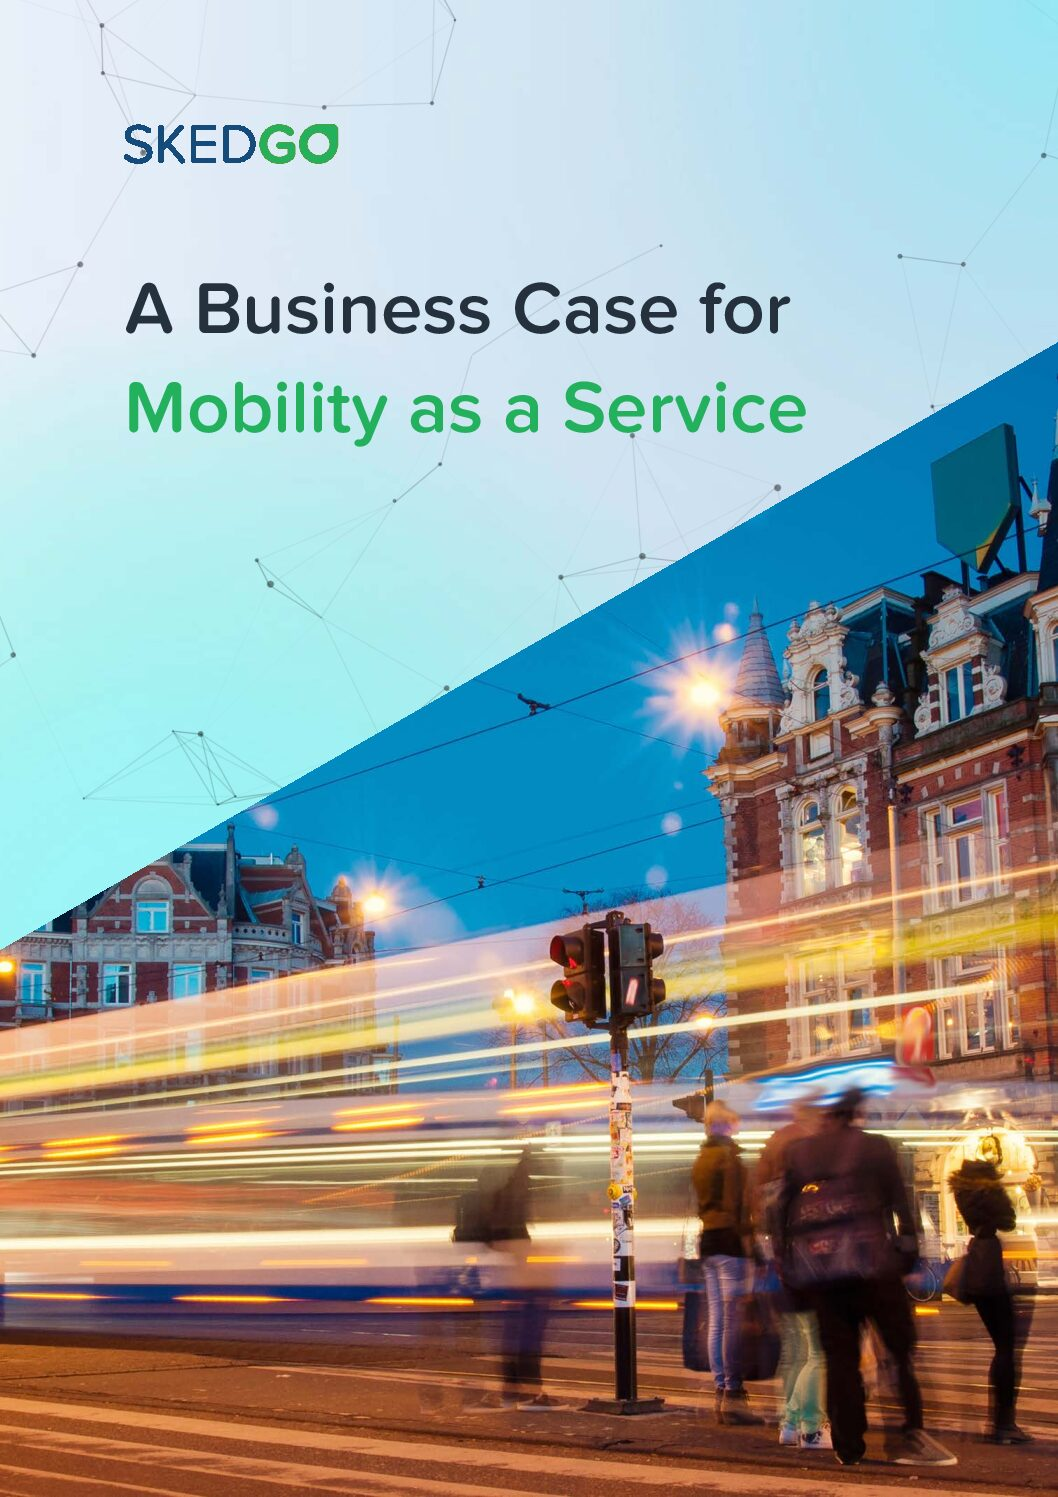 A Business Case for Mobility as a Service